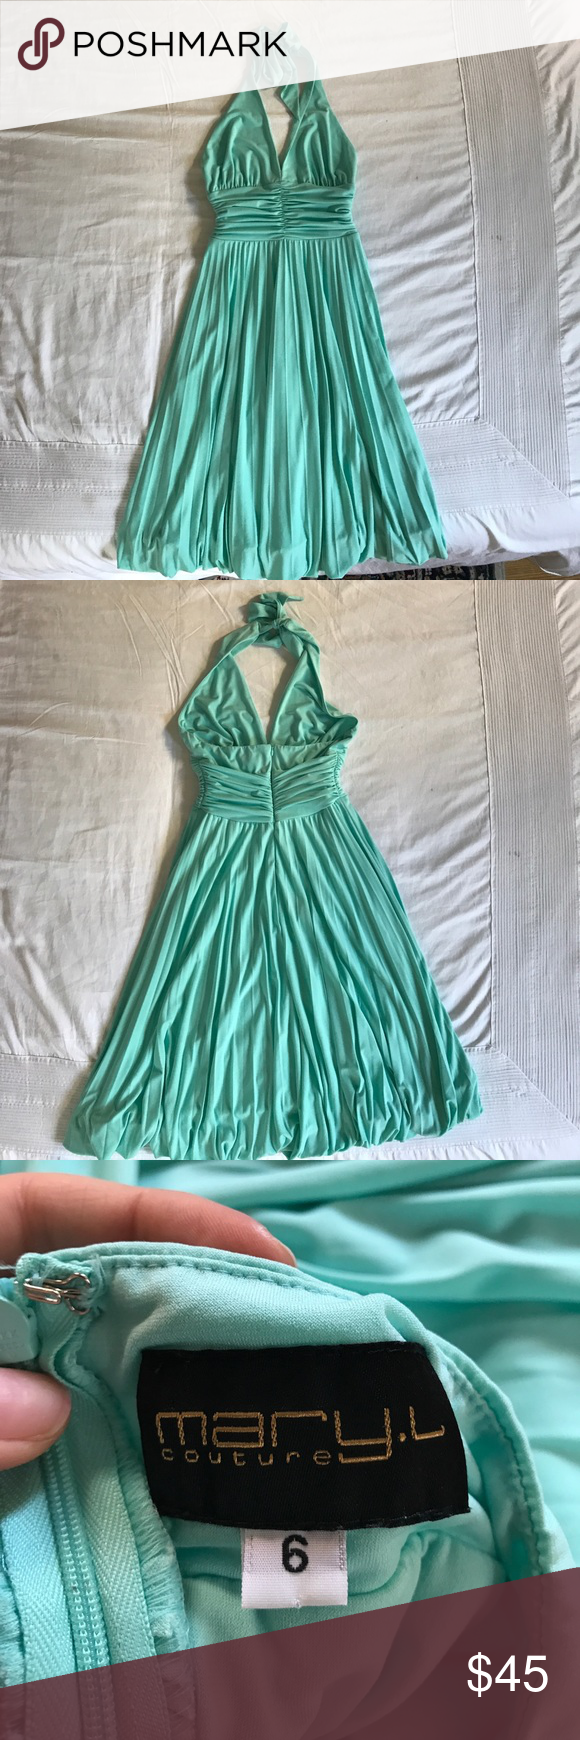 Beautiful teal halter flowy dress Mary L Couture Beautiful teal halter flowy dress. Perfect condition. Worn once Mary L Couture Dresses Midi